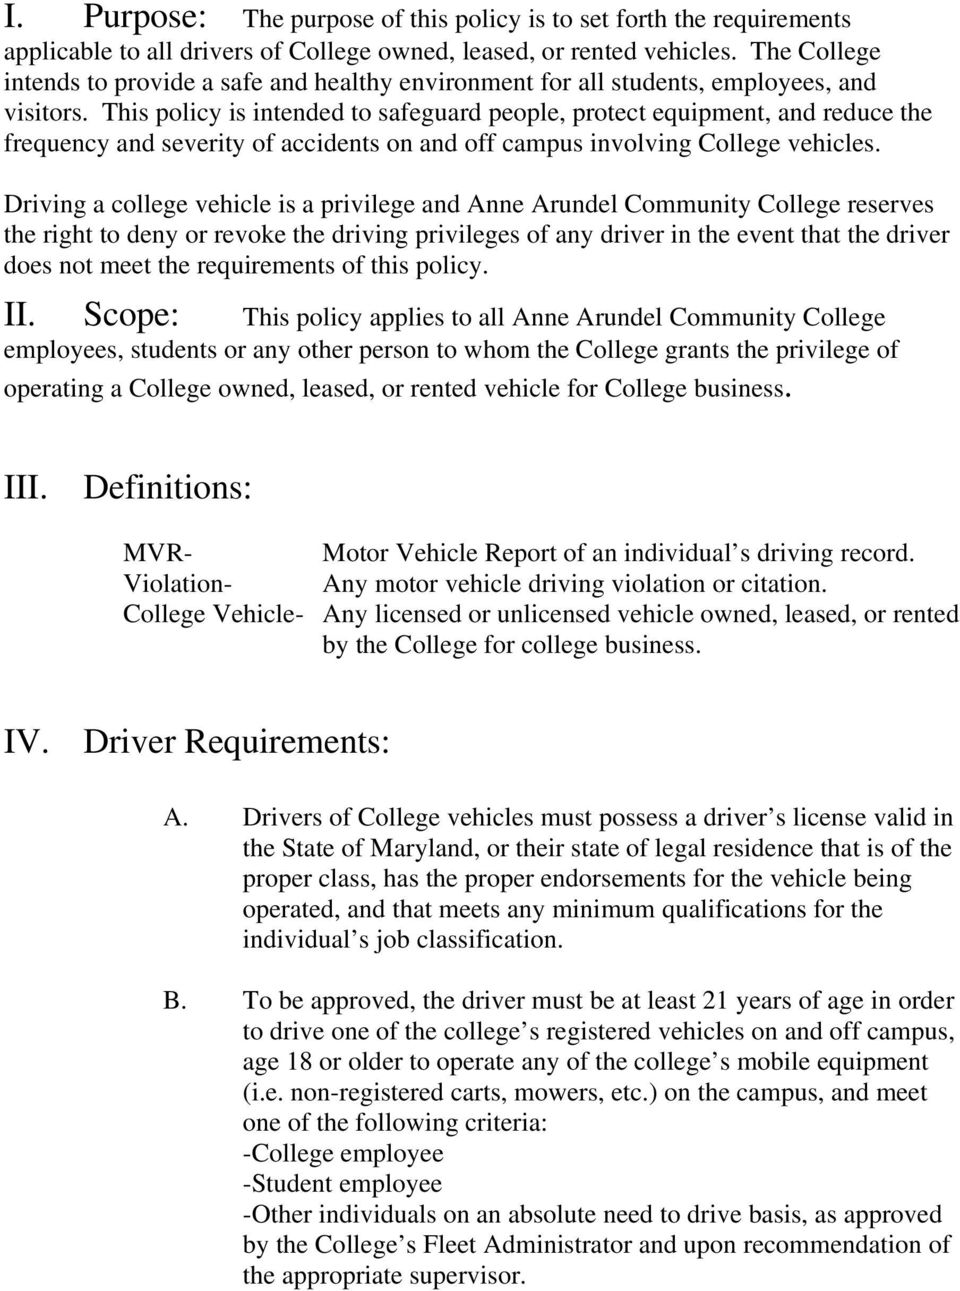 This policy is intended to safeguard people, protect equipment, and reduce the frequency and severity of accidents on and off campus involving College vehicles.